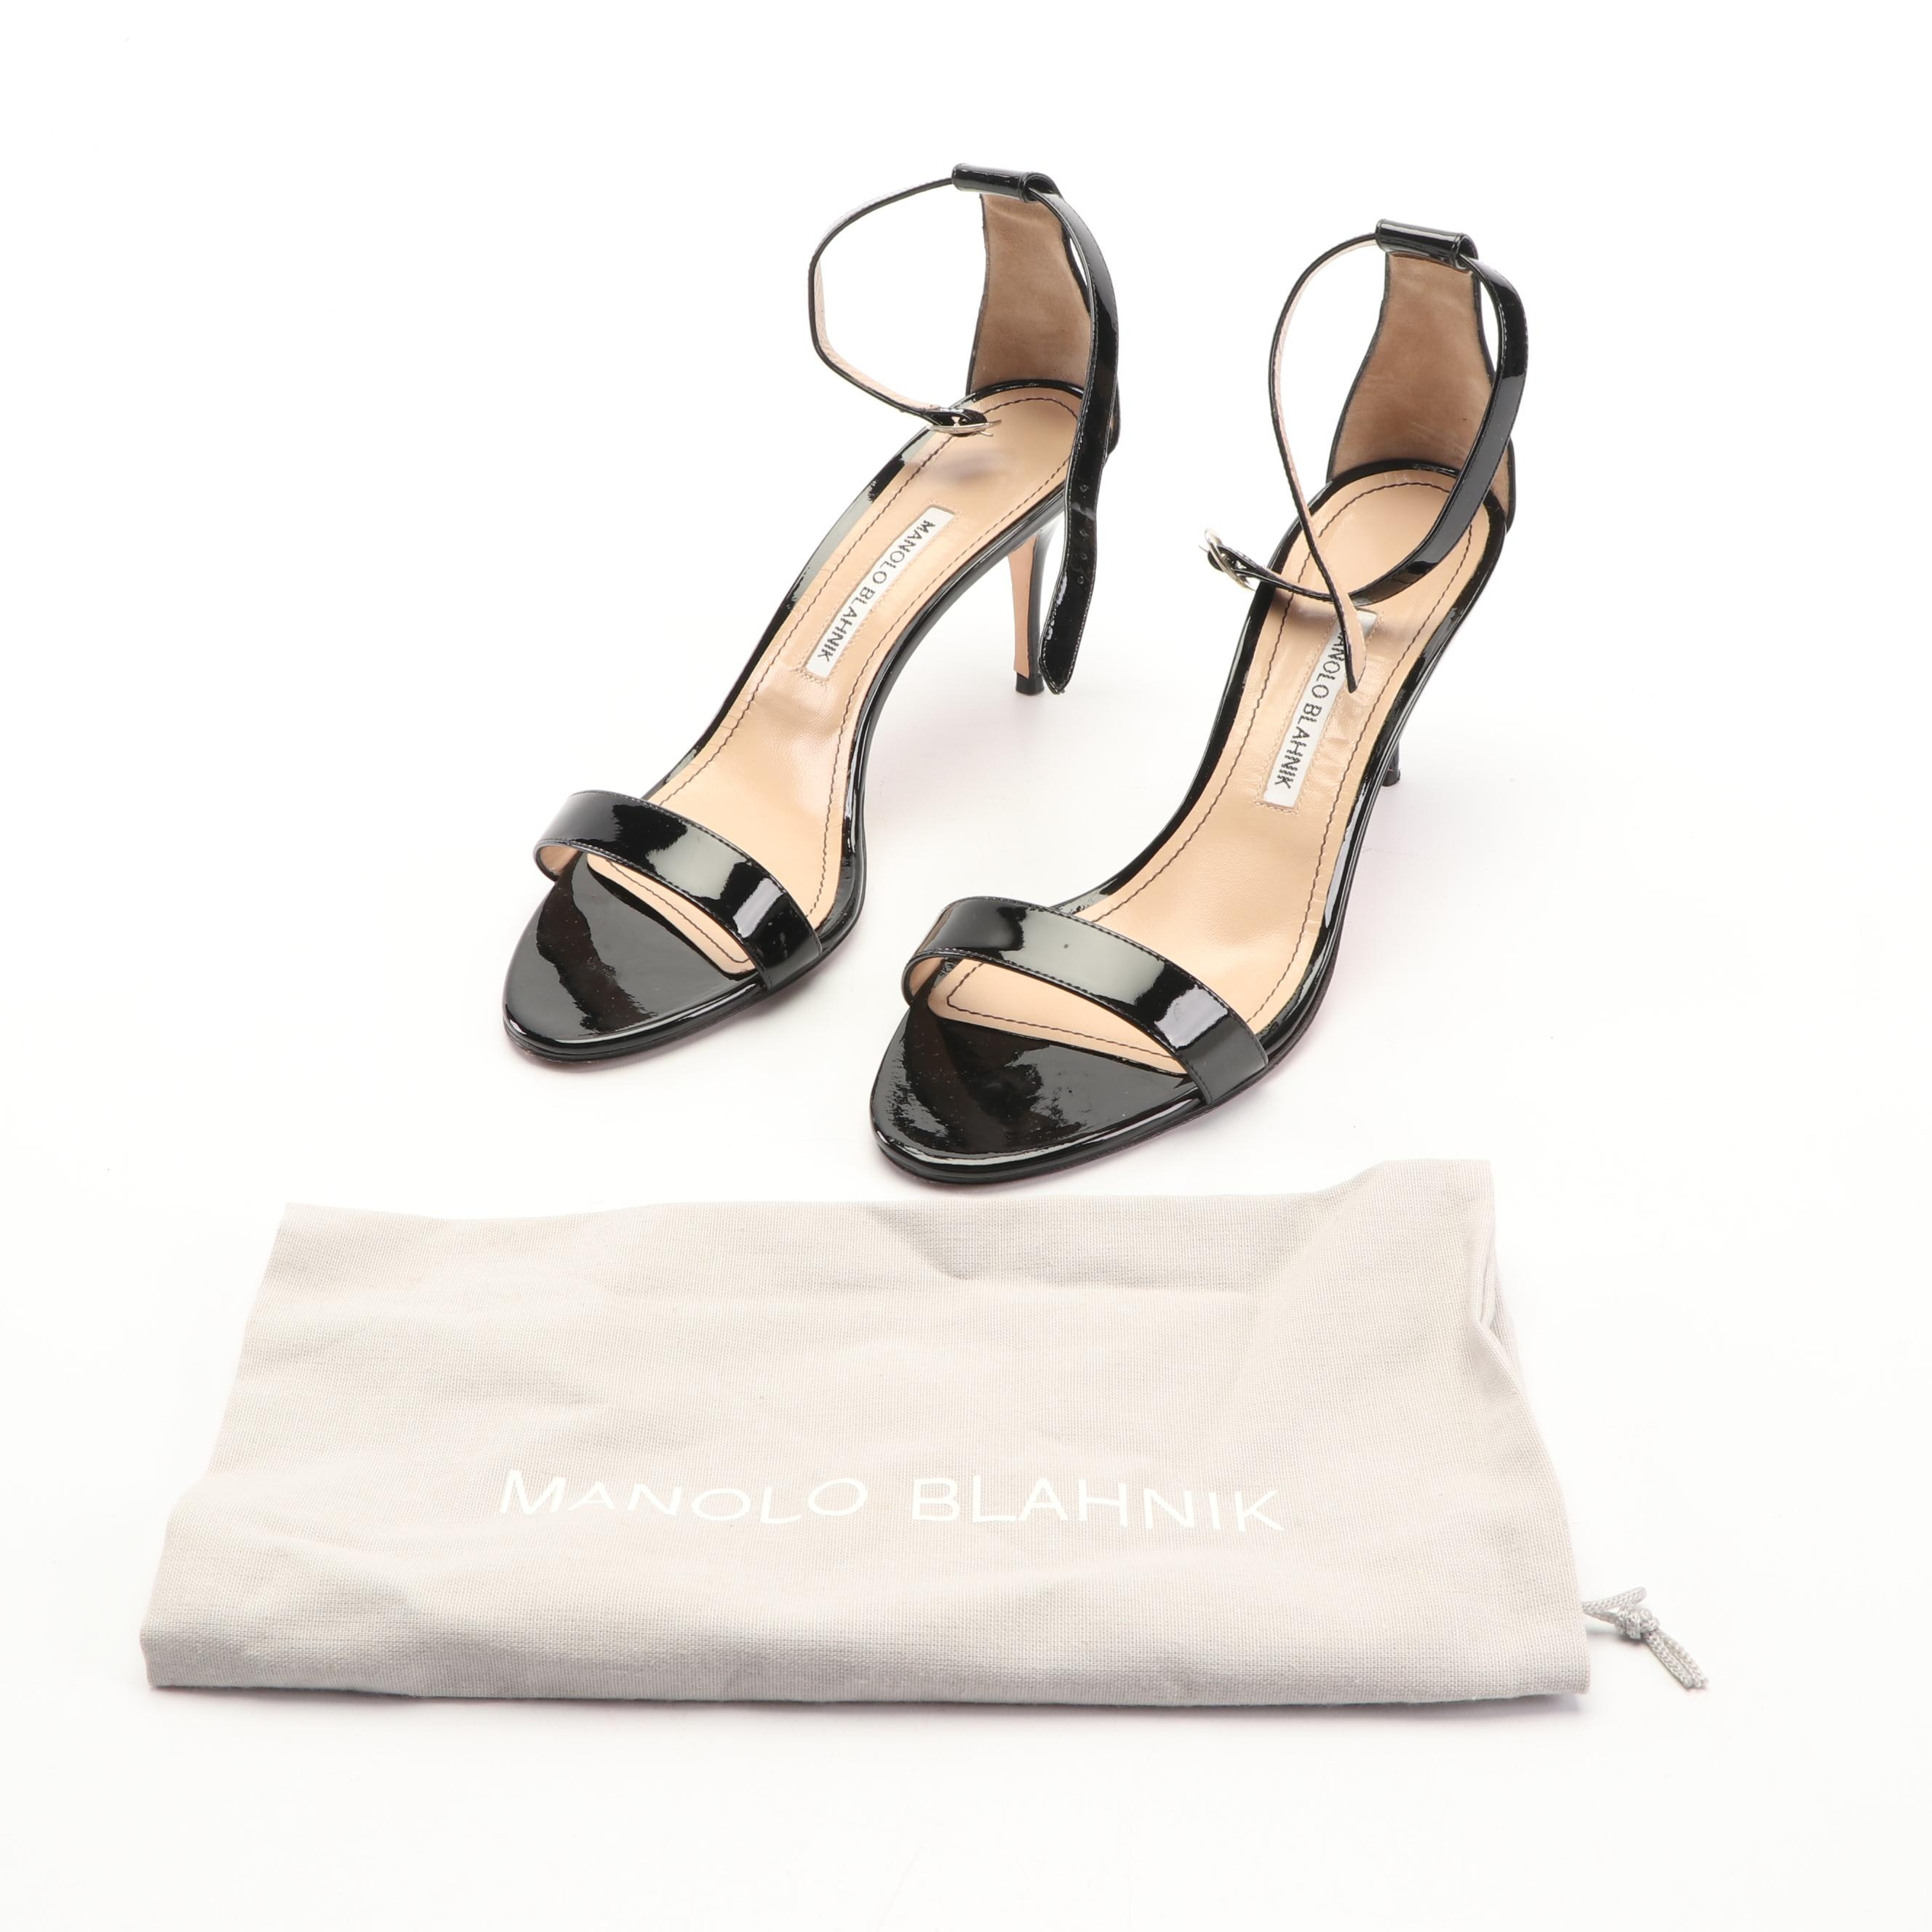 Manolo Blahnik Black Patent Leather Ankle Strap Heels